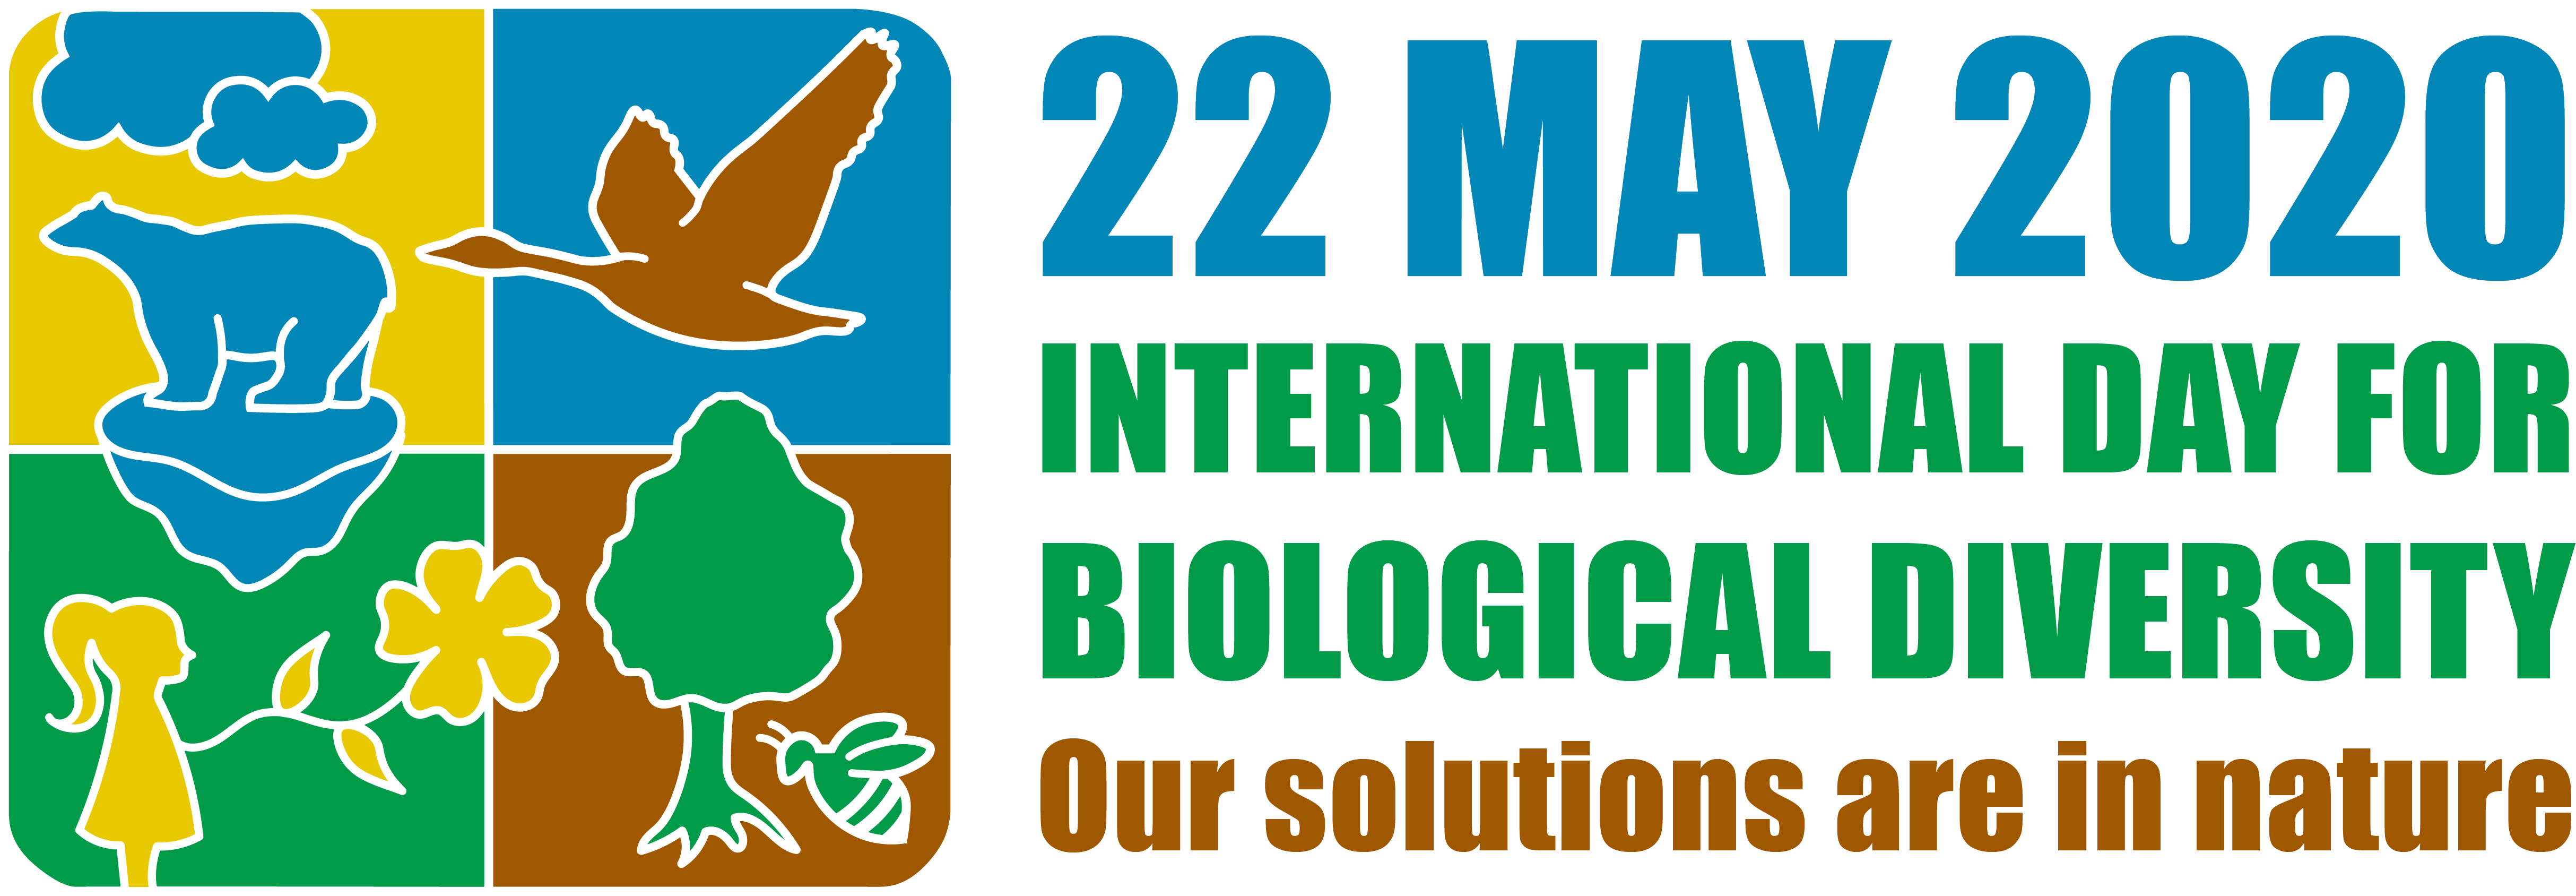 International Day for Biological Diversity 2020 logo